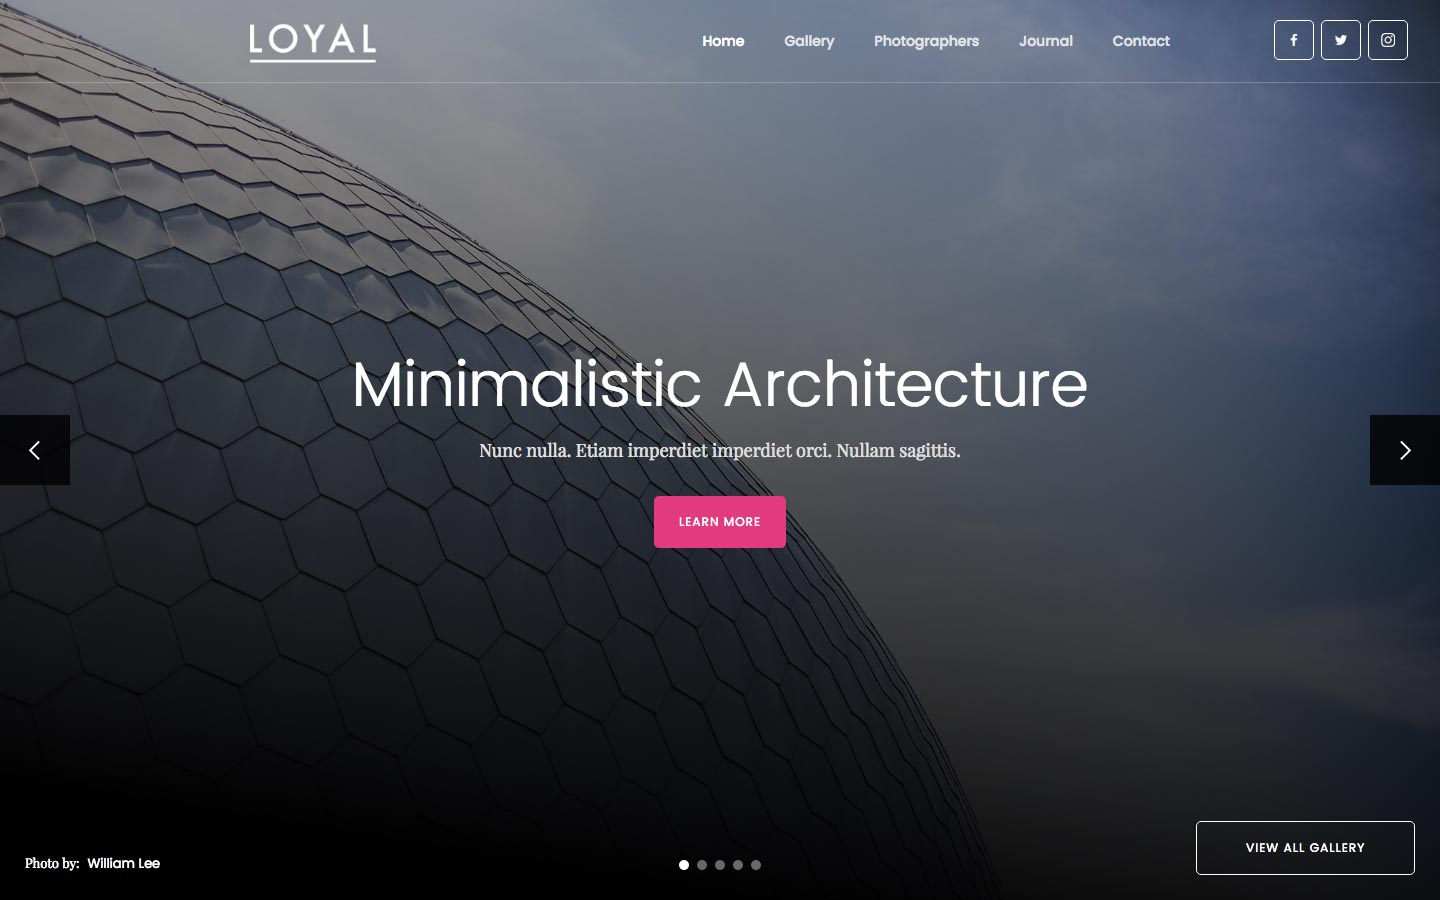 loyal photography html5 responsive website template